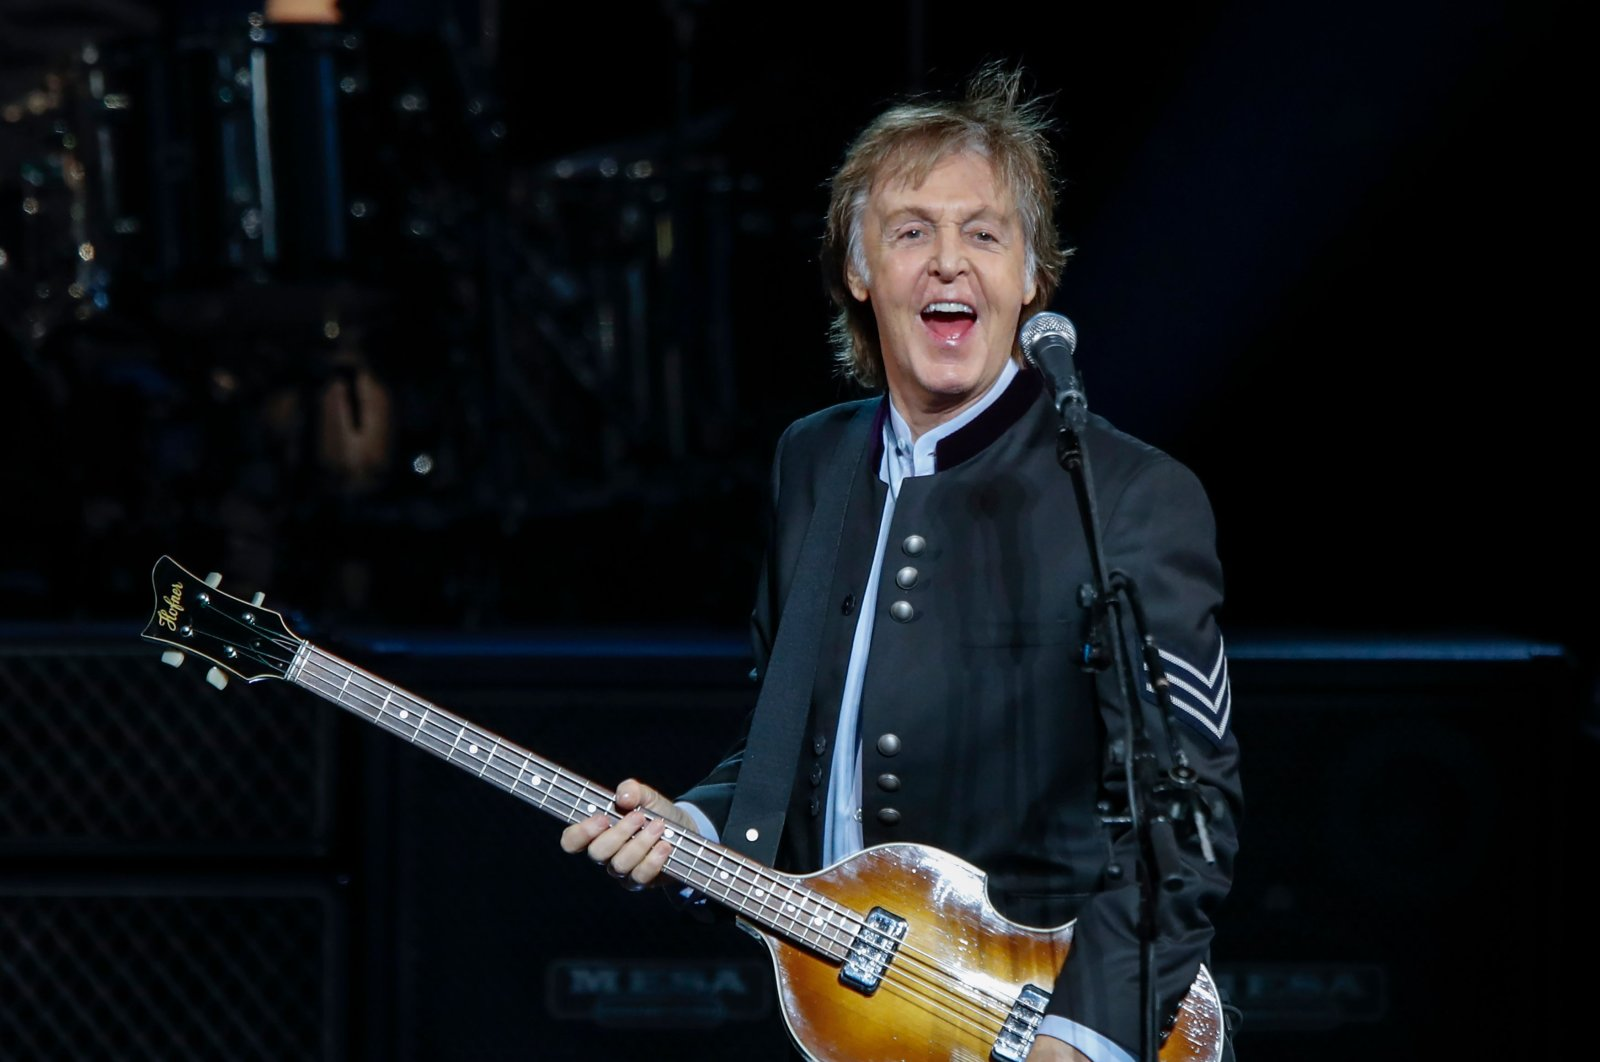 In this file photo taken on July 26, 2017 Sir Paul McCartney performs in concert during his One on One tour at Hollywood Casino Amphitheatre in Tinley Park, Illinois. (AFP Photo)